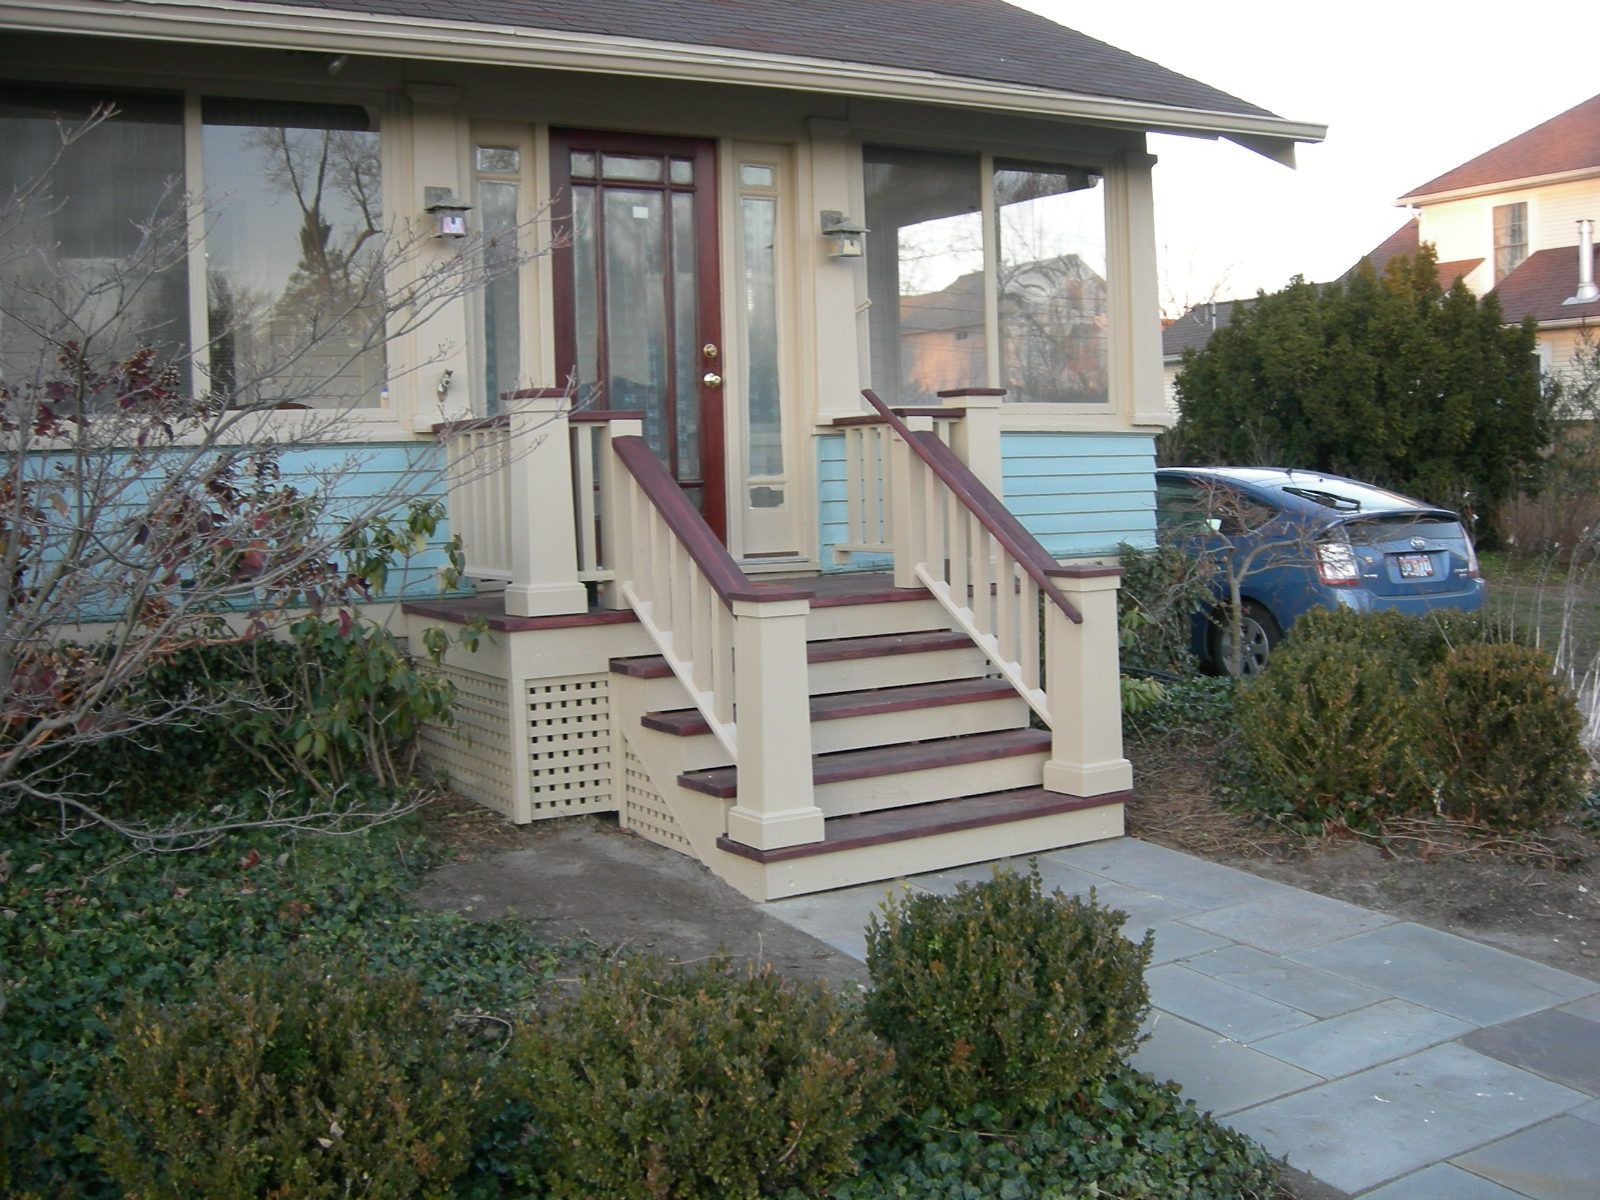 Pin By Kathie Maniaci On Bungalow Stair Railings Outdoor Stair Railing Porch Stairs Porch Steps